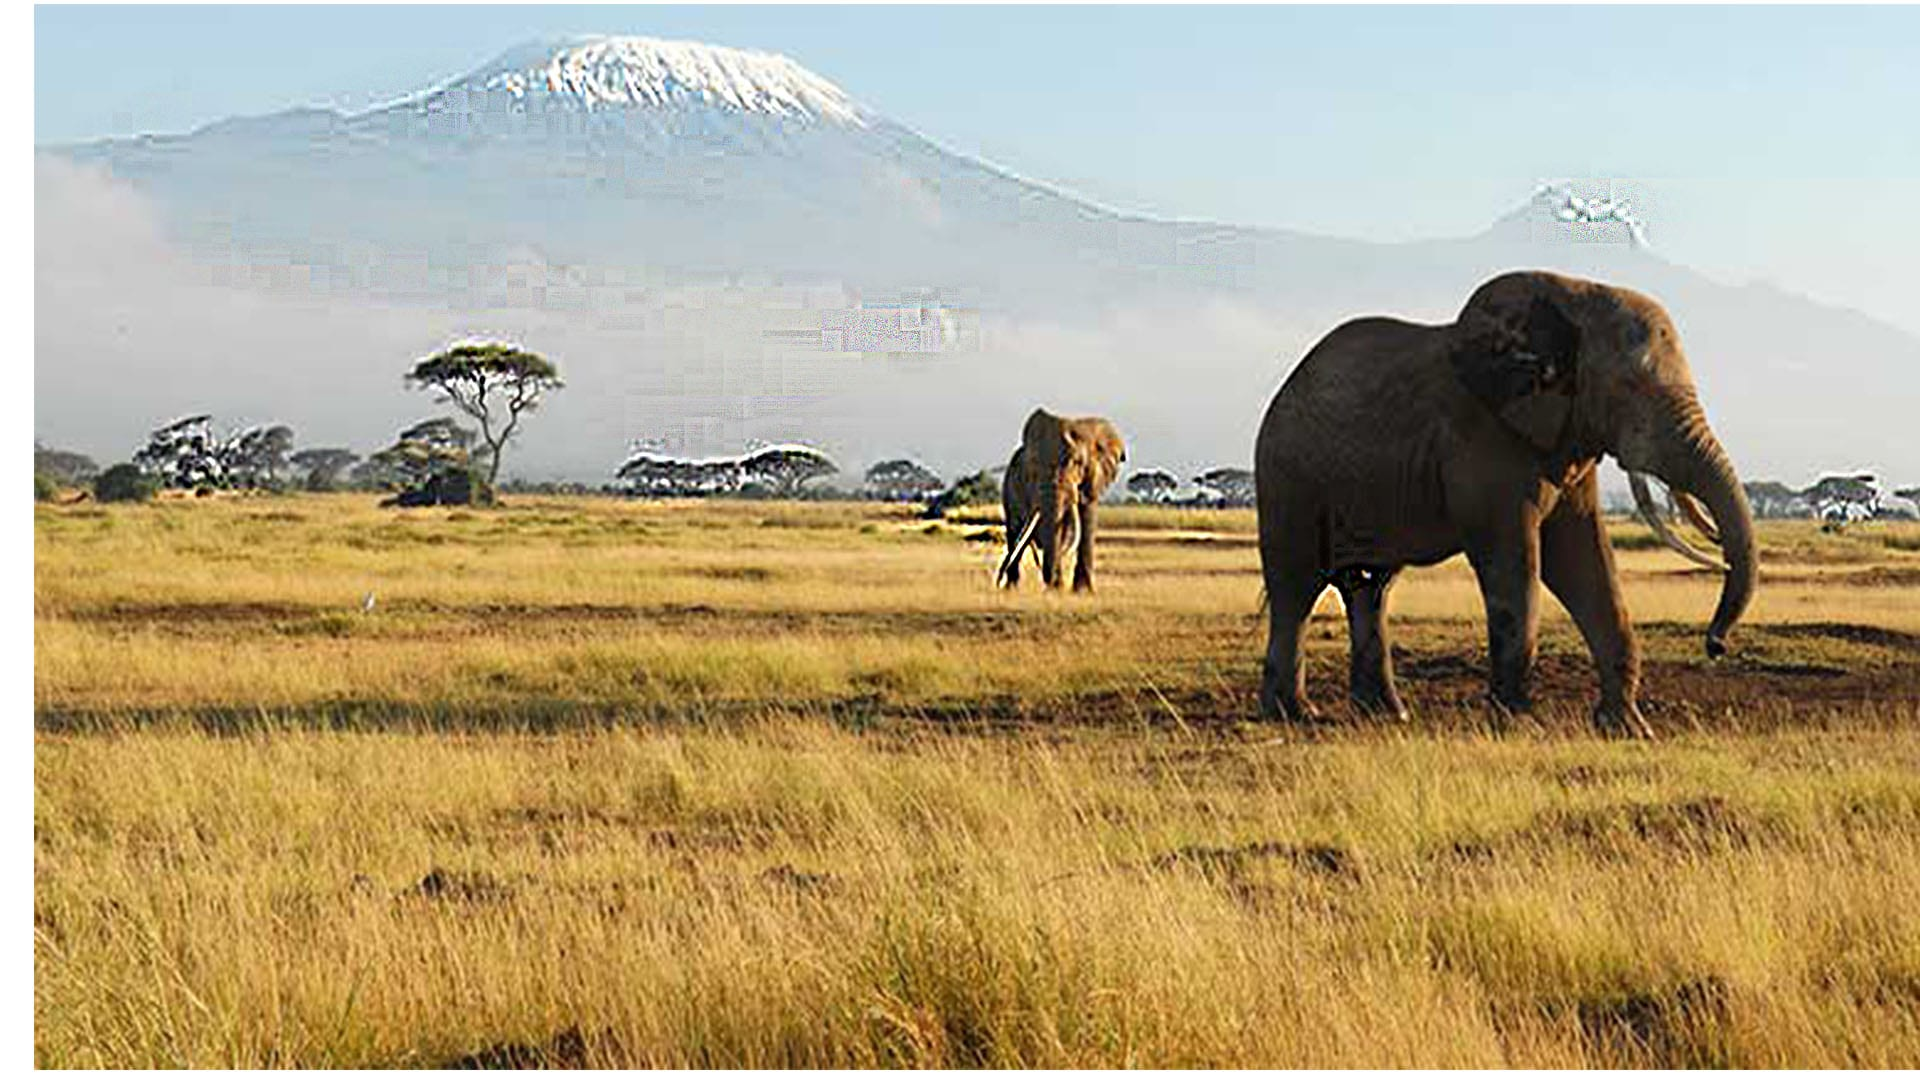 Mt Kilimanjaro view from Amboseli